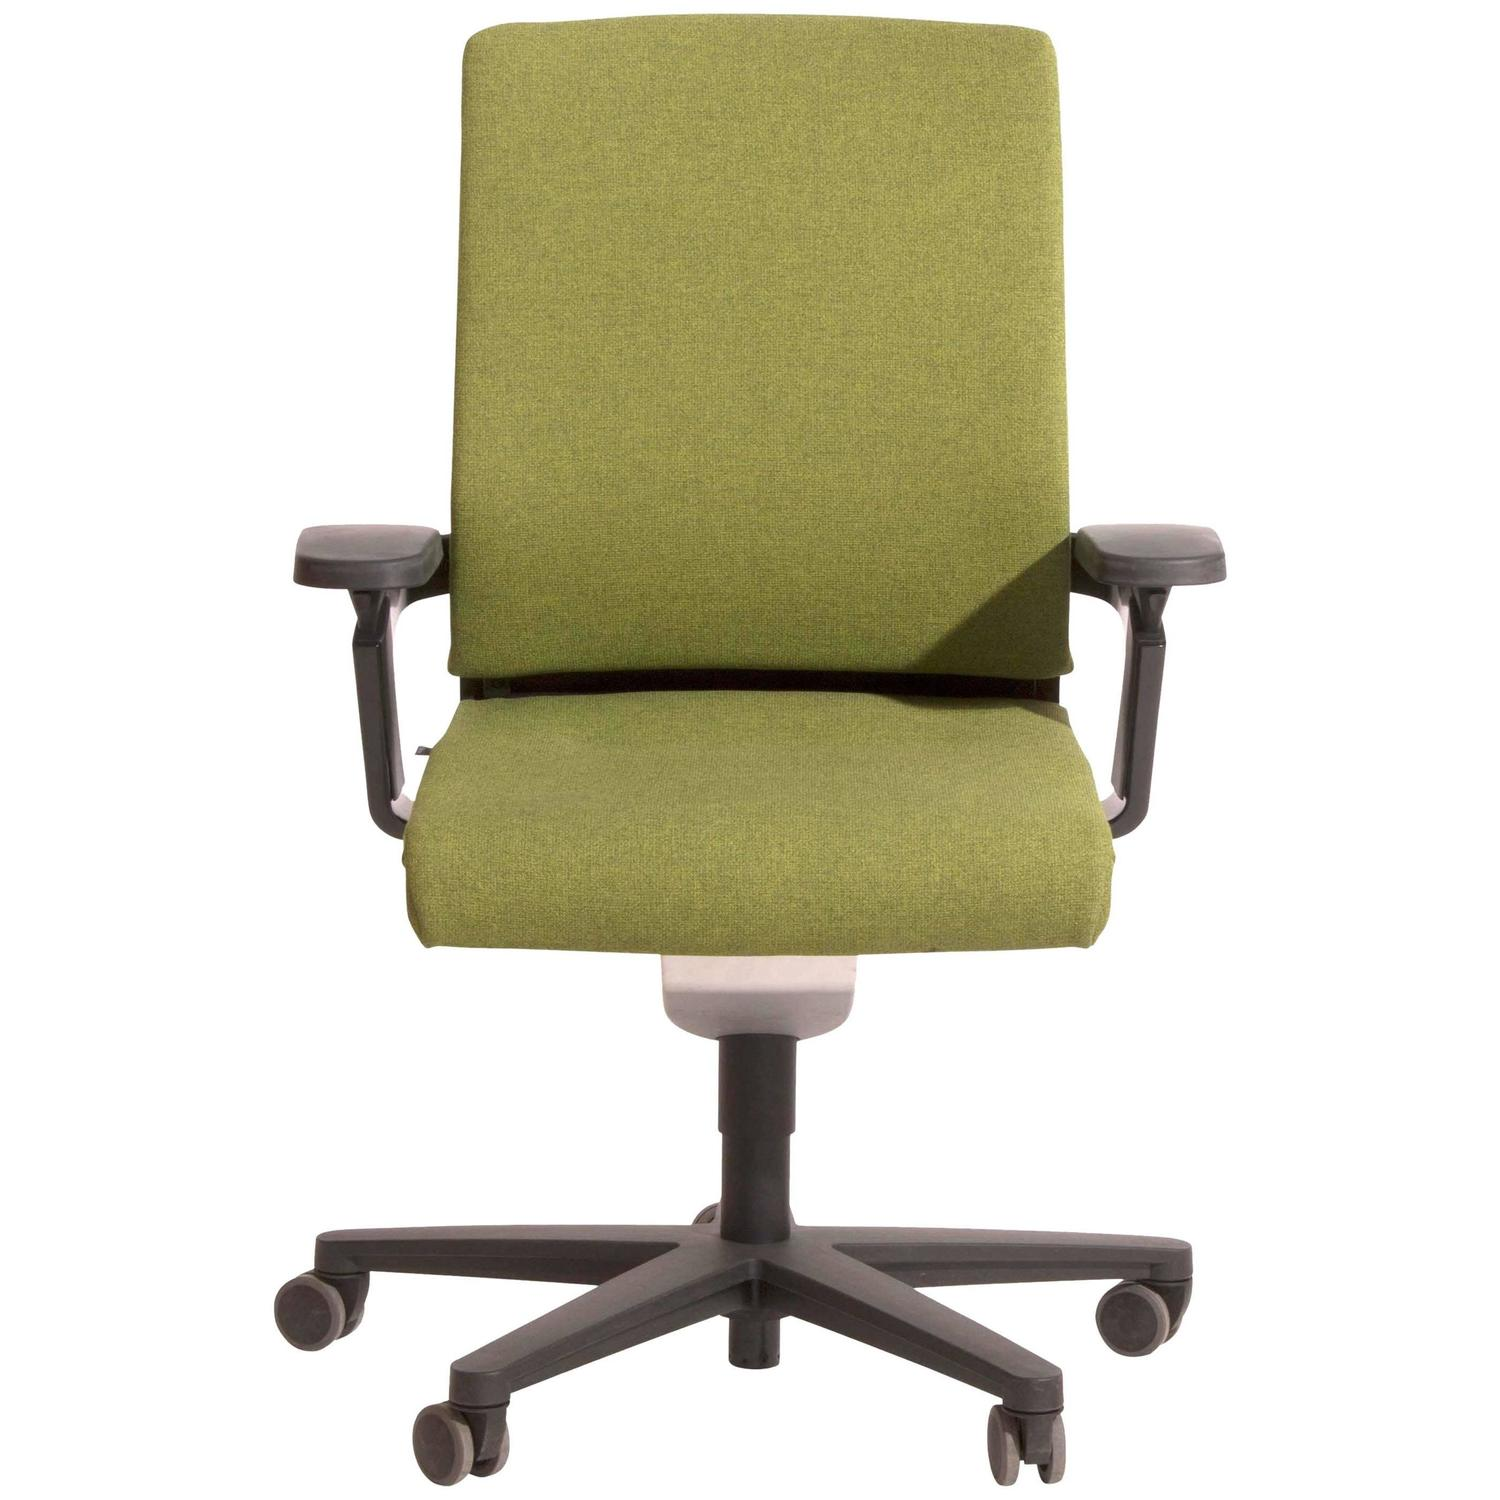 Green Fabric on 174 7 Task Armchair by Wiege for Wilkhahn Germany